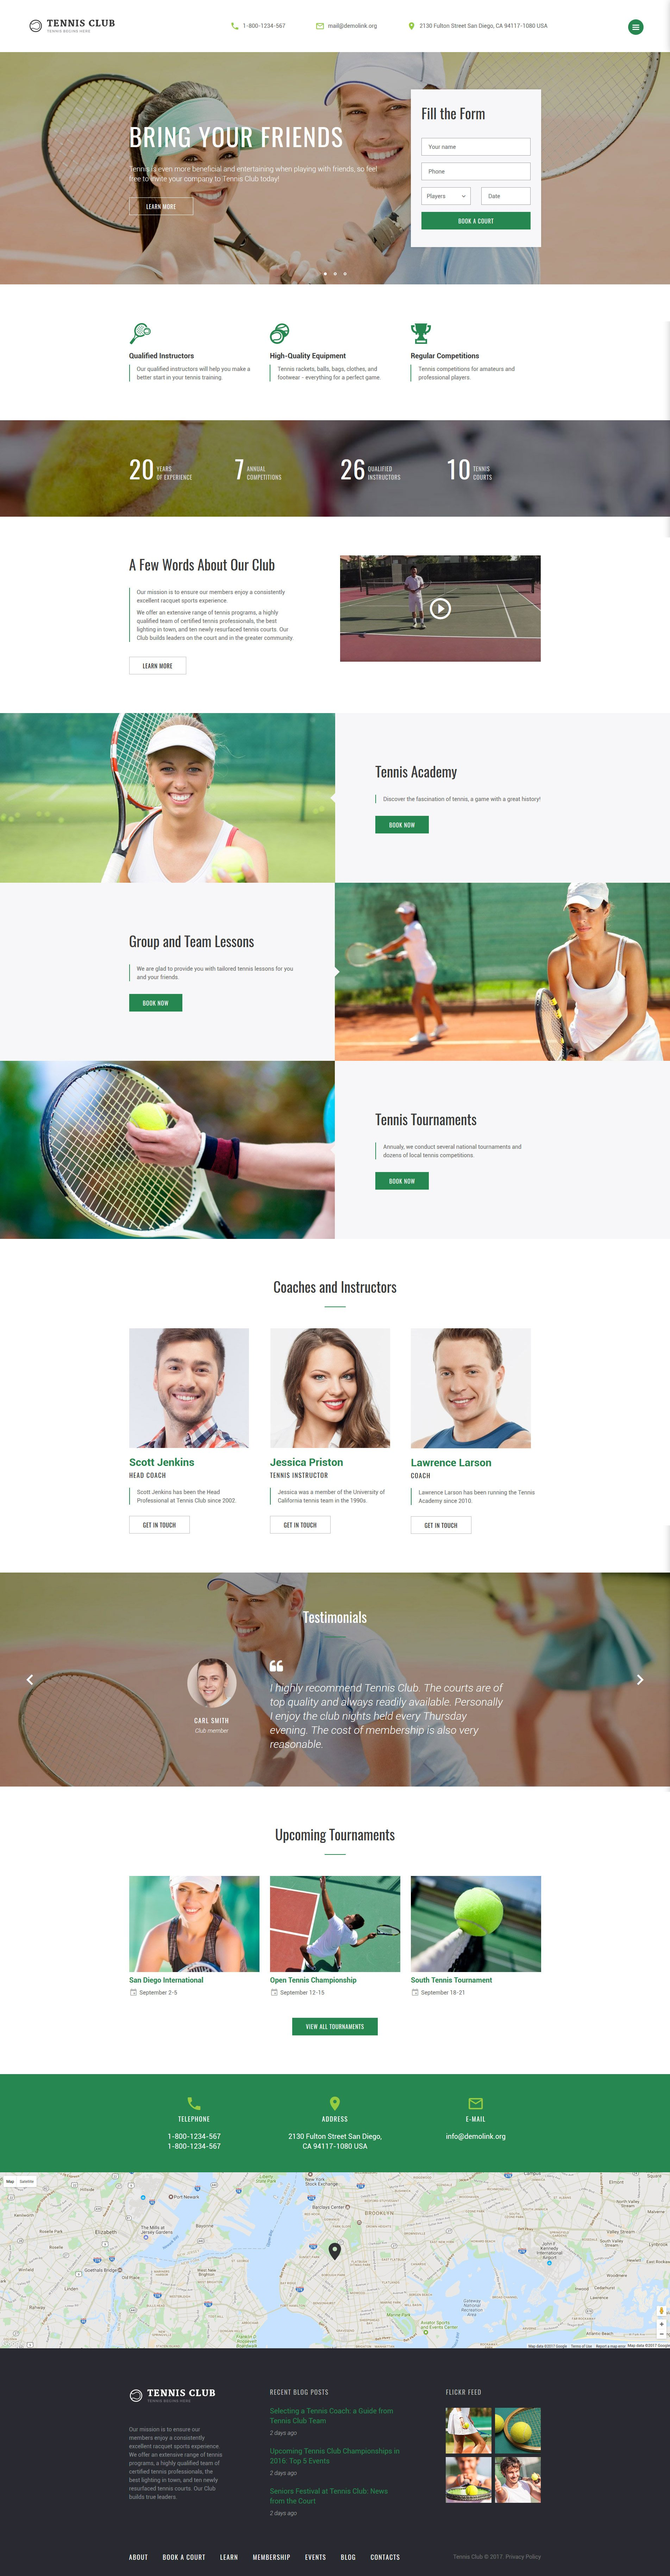 Tennis Club - Sports & Events Multipage Website Template